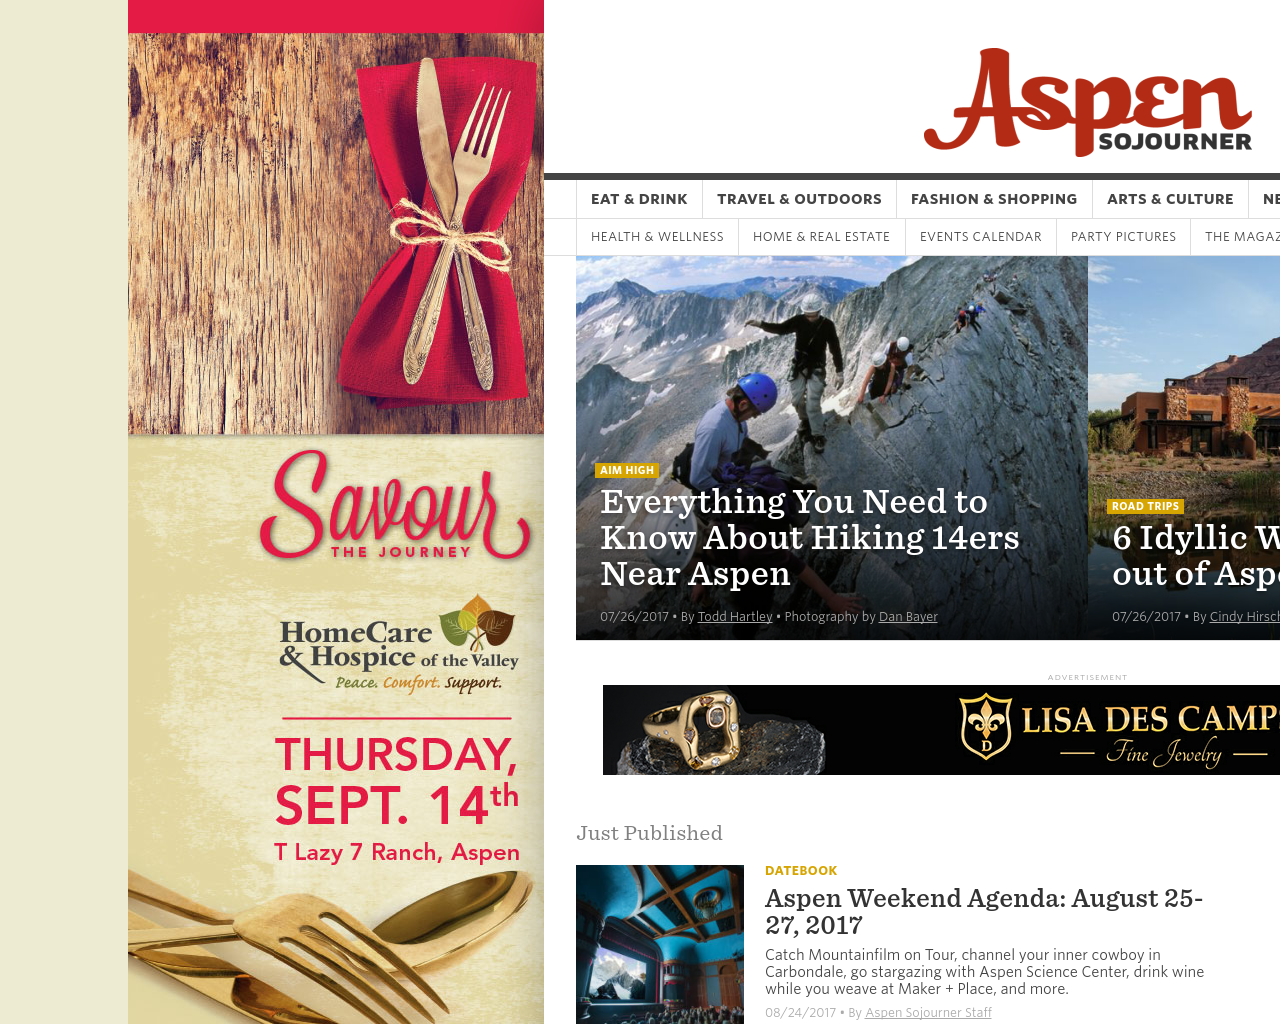 Aspen-Sojourner-Advertising-Reviews-Pricing